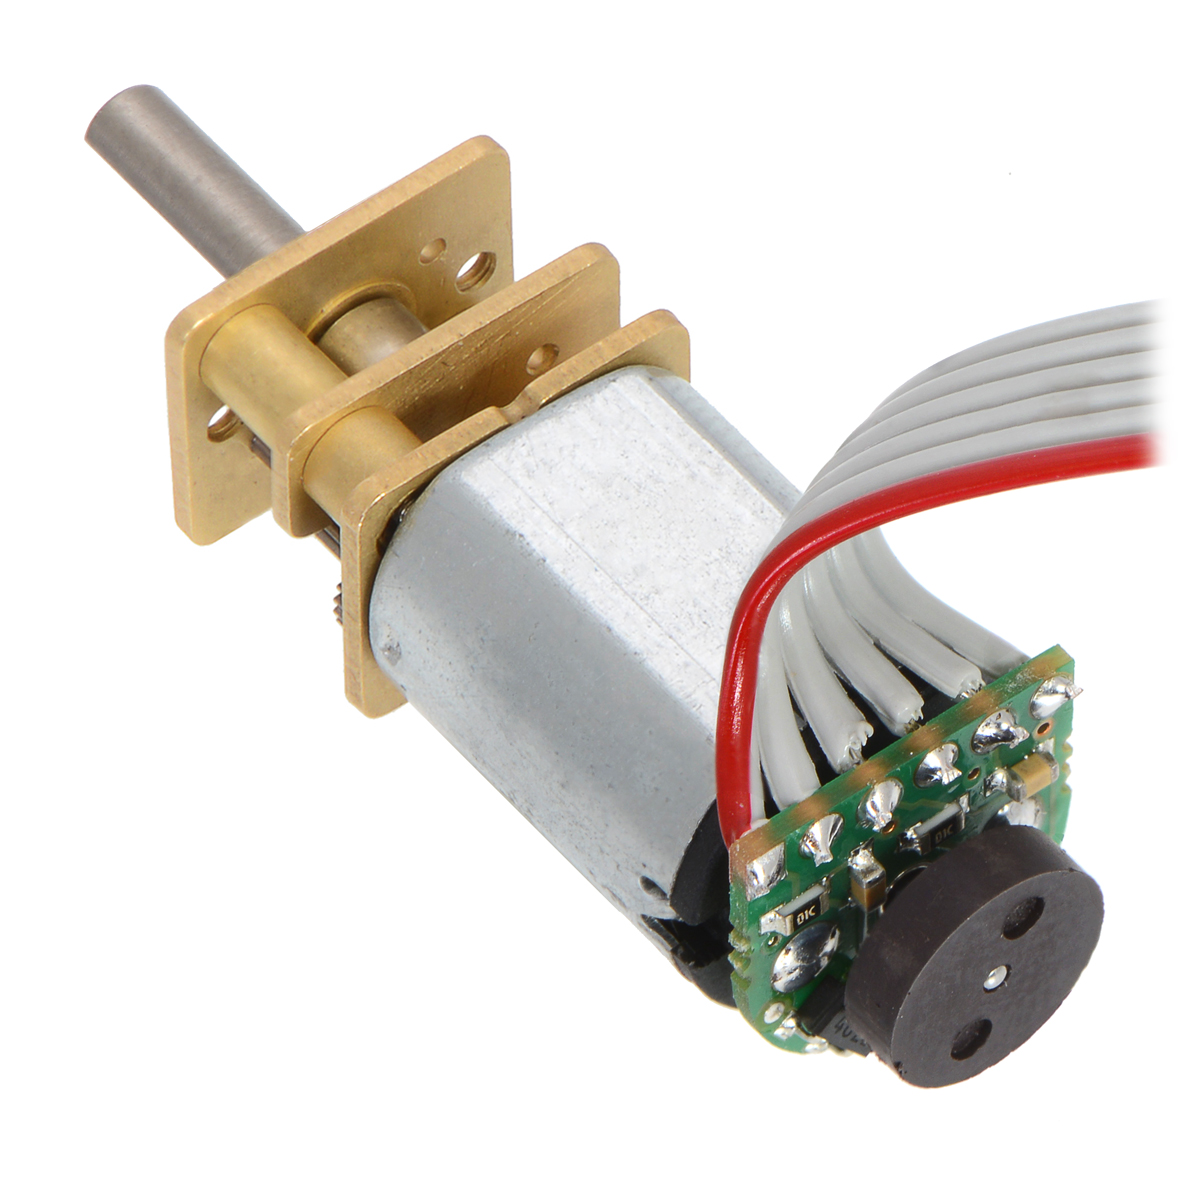 Pololu 1501 Micro Metal Gearmotor Hp 6v Gear Motor Wiring Diagram Magnetic Encoder Kit For Gearmotors Assembled With Ribbon Cable Wires